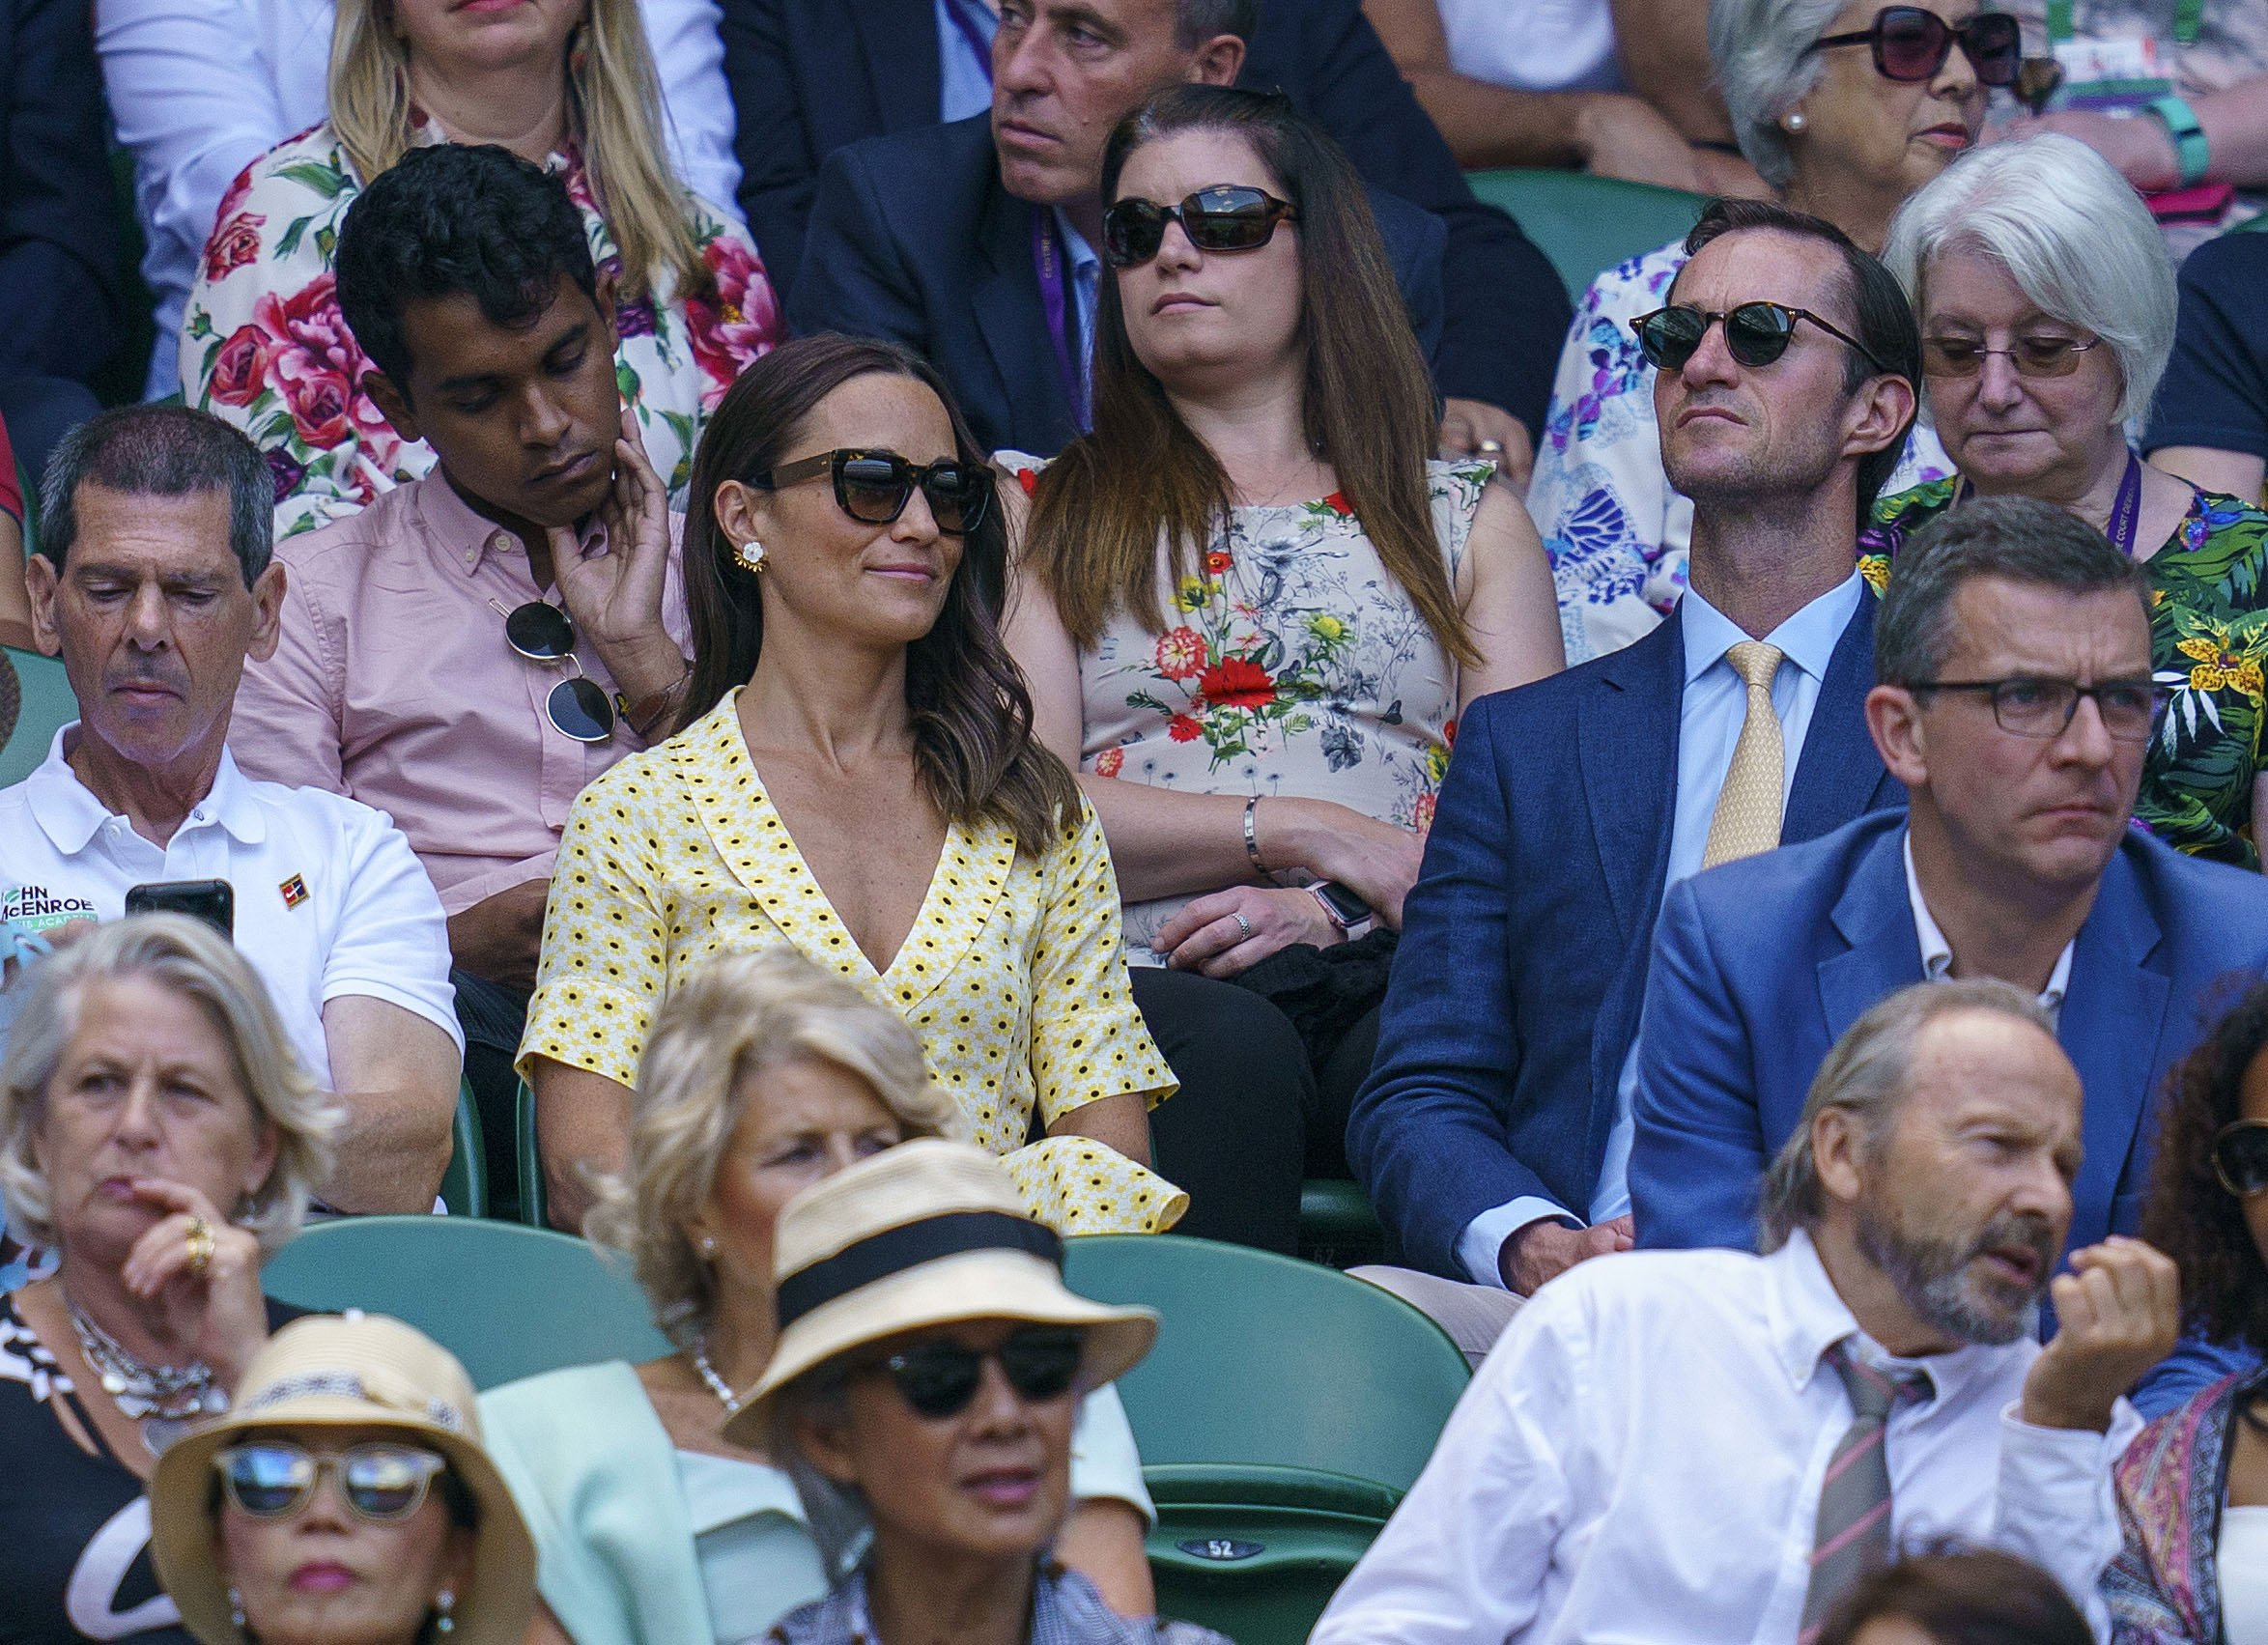 Jul 12, 2019; London, United Kingdom; Pippa Middleton in attendance for the Novak Djokovic (SRB) and Roberto Bautista Agut (ESP) match on day 11 at the All England Lawn and Croquet Club., Image: 457971157, License: Rights-managed, Restrictions: *** World Rights ***, Model Release: no, Credit line: Profimedia, SIPA USA